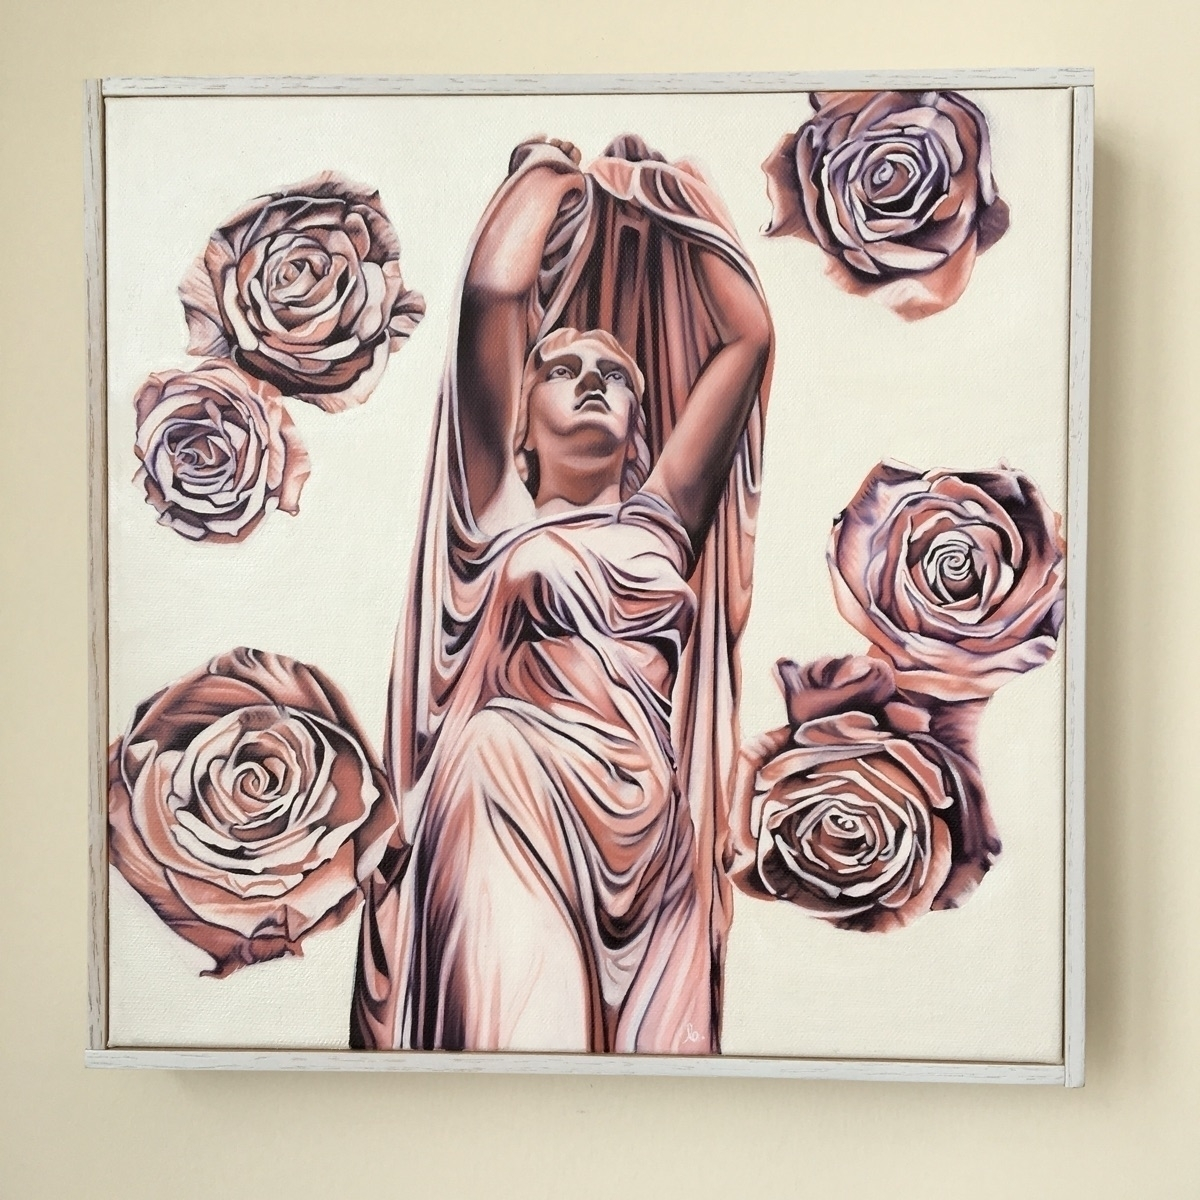 Undine oil canvas, 12 inches - brandiread | ello